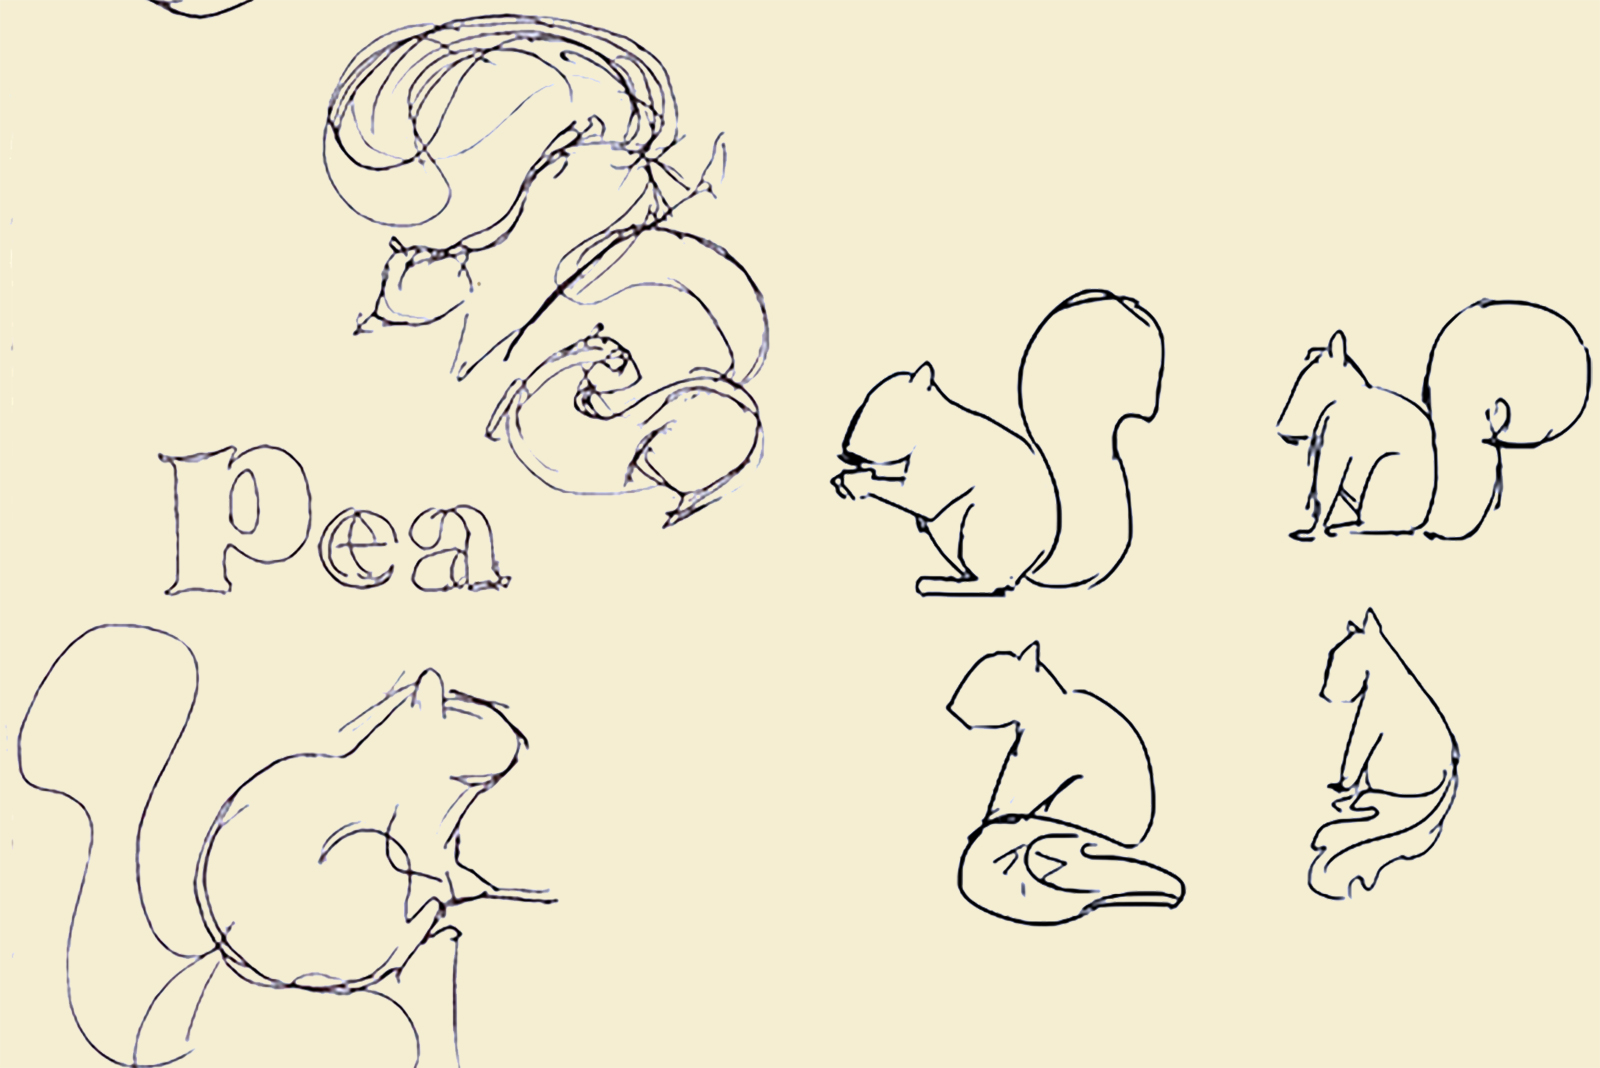 Sketches created during the branding of Pease Park Conservancy.